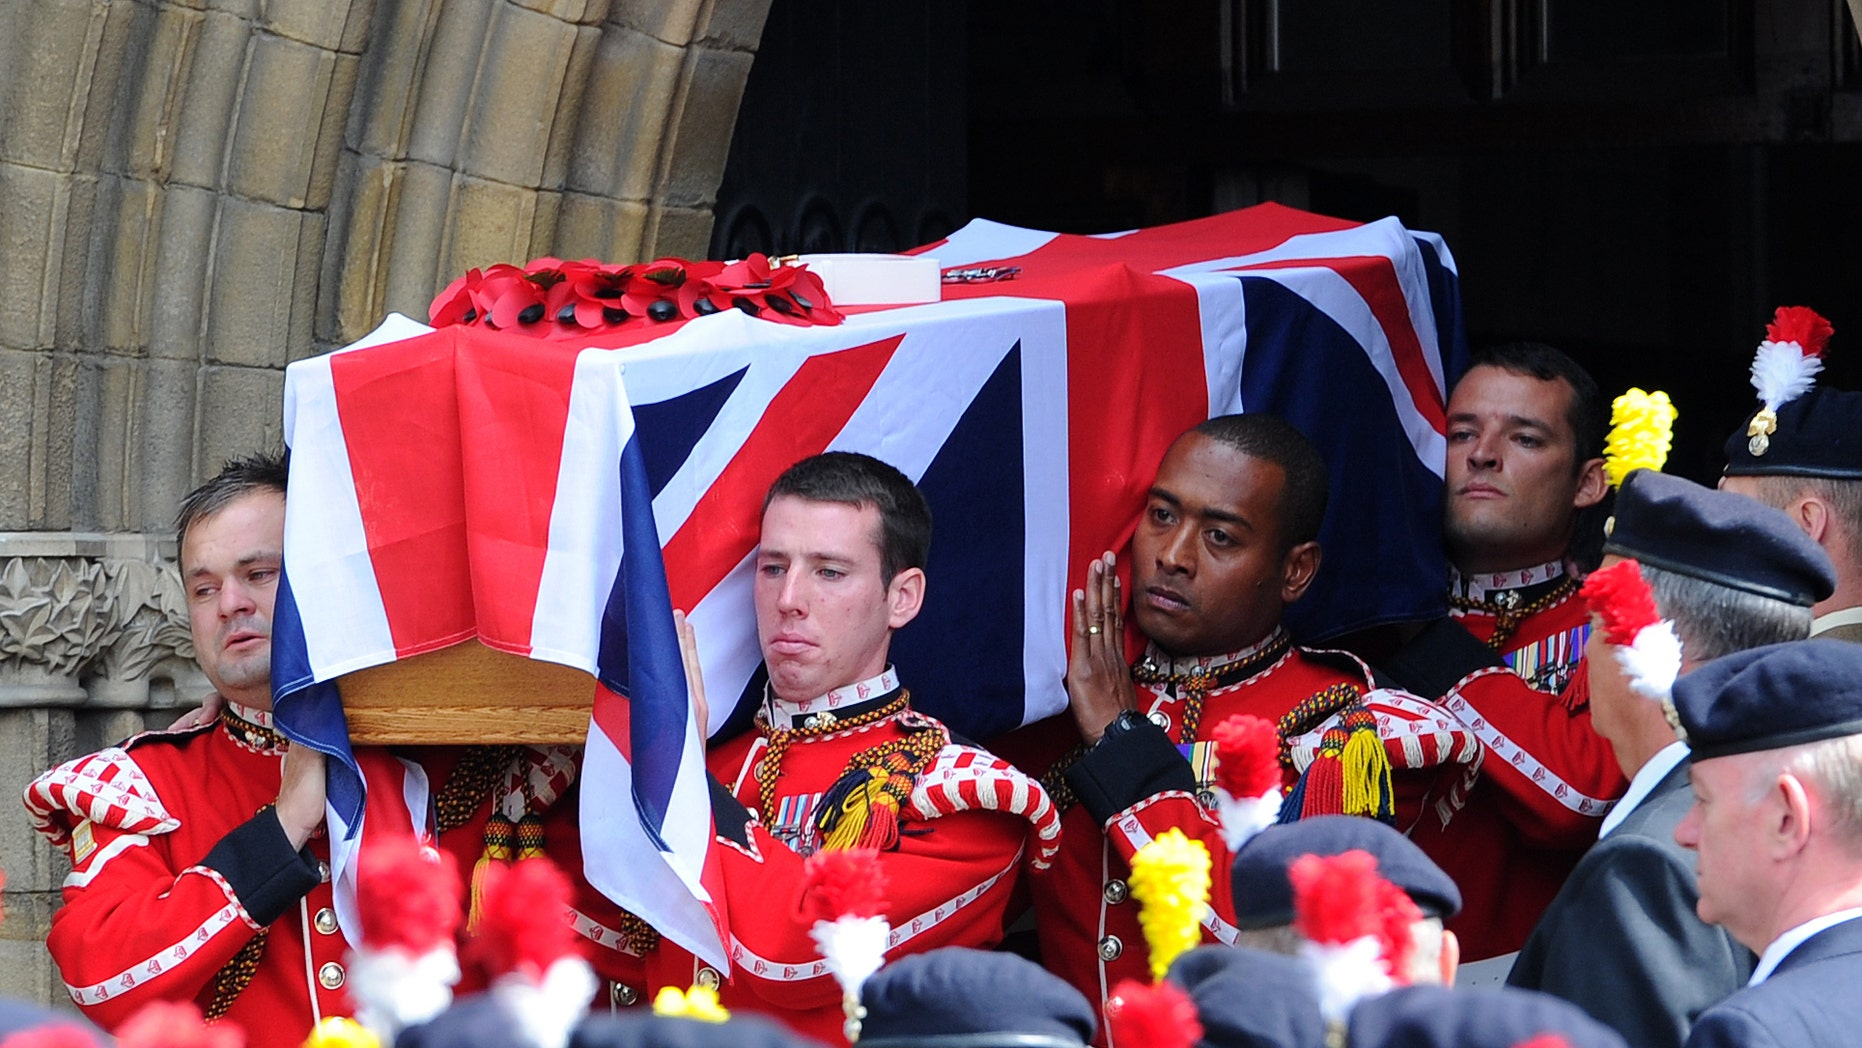 July 12, 2013 - The coffin of murdered Fusilier Lee Rigby is carried by soldiers after his funeral service at Bury Parish church in Greater Manchester, England. Relatives of the British soldier killed in broad daylight by alleged Islamic extremists say they are deeply grateful for the support they have received from the public. Rigby was hacked to death May 22 on a London street near his army barracks.